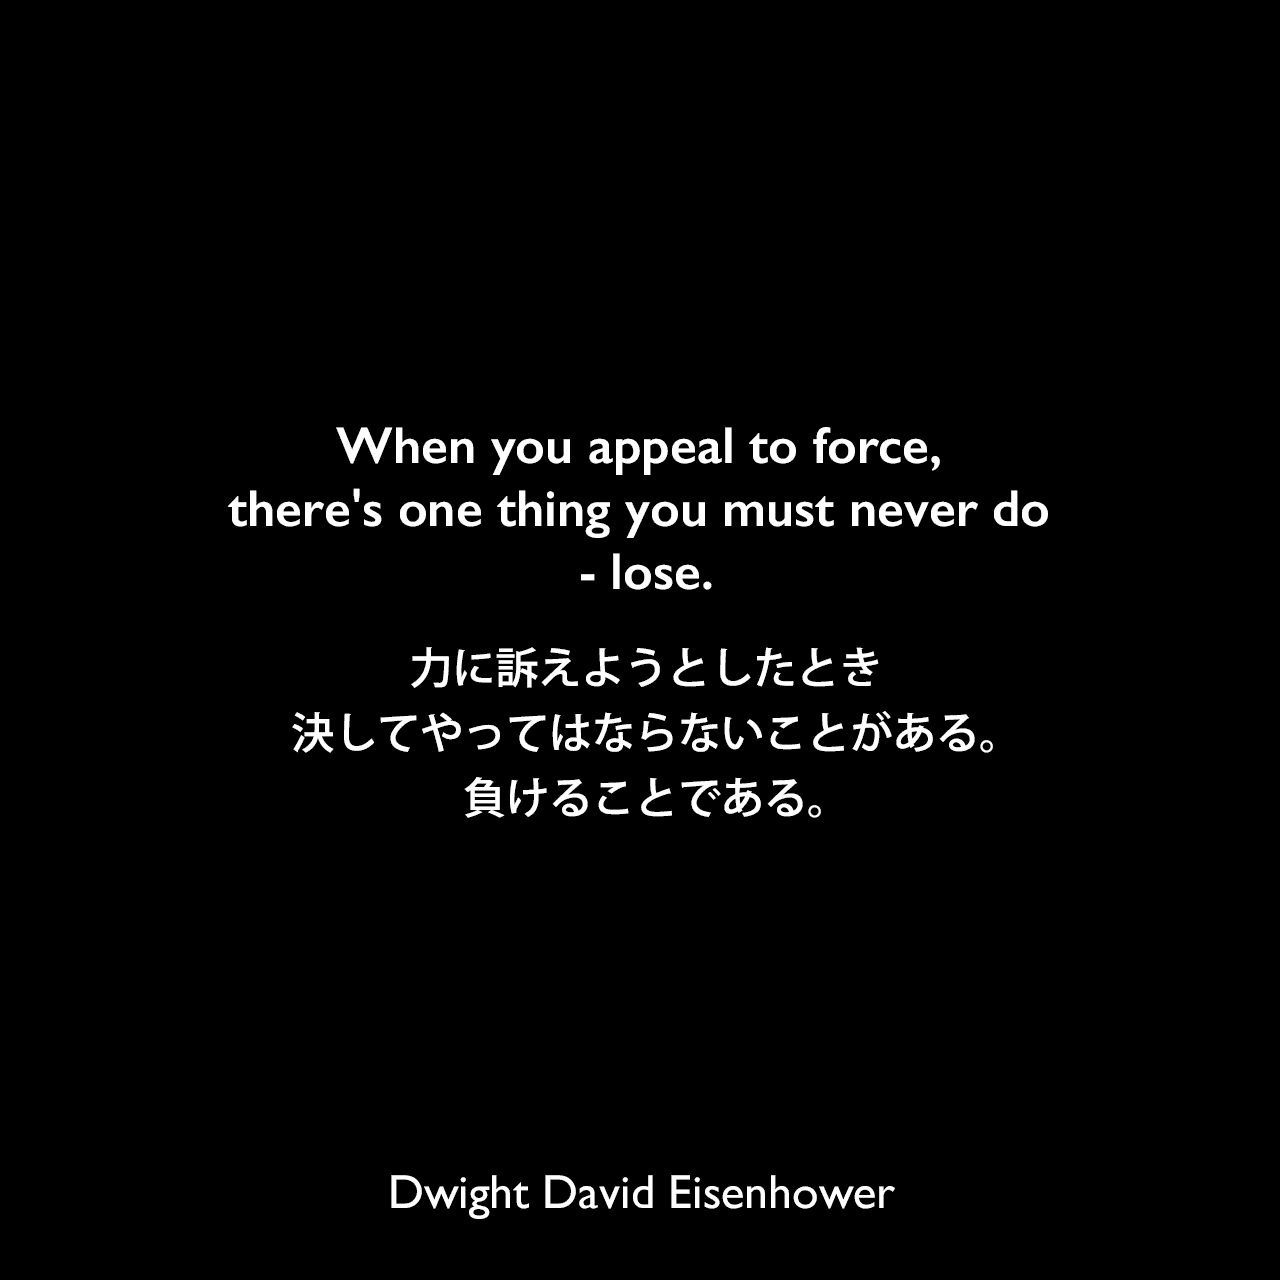 When you appeal to force, there's one thing you must never do - lose.力に訴えようとしたとき、決してやってはならないことがある。負けることである。Dwight David Eisenhower